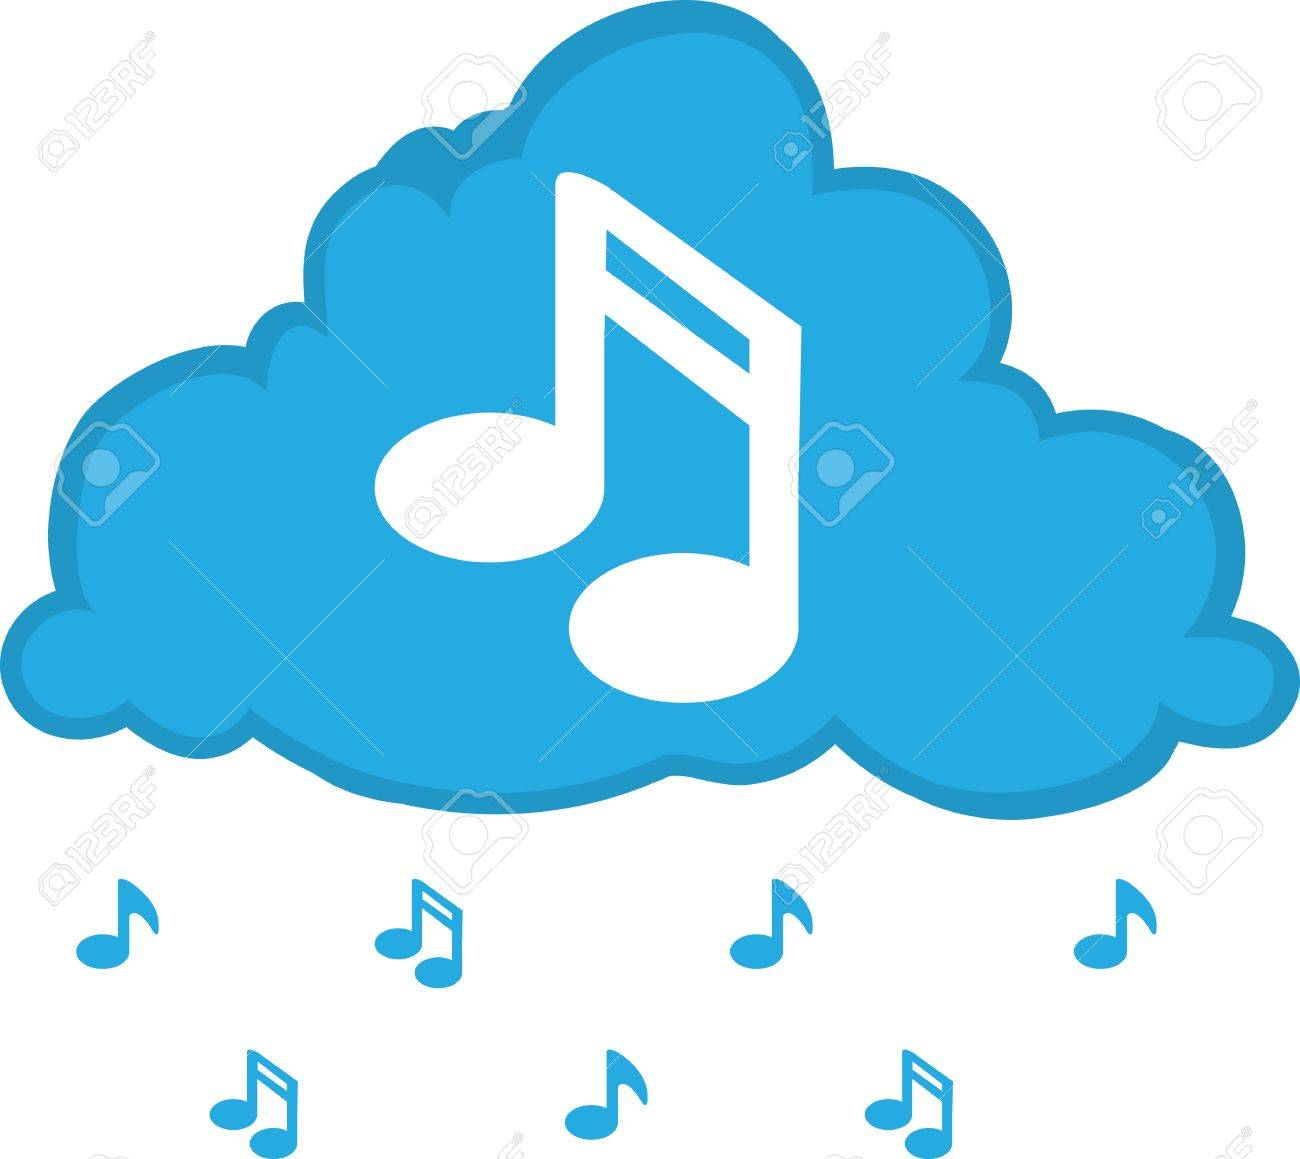 cloud with music notes floating down royalty free cliparts vectors rh 123rf com Single Music Notes Single Music Notes